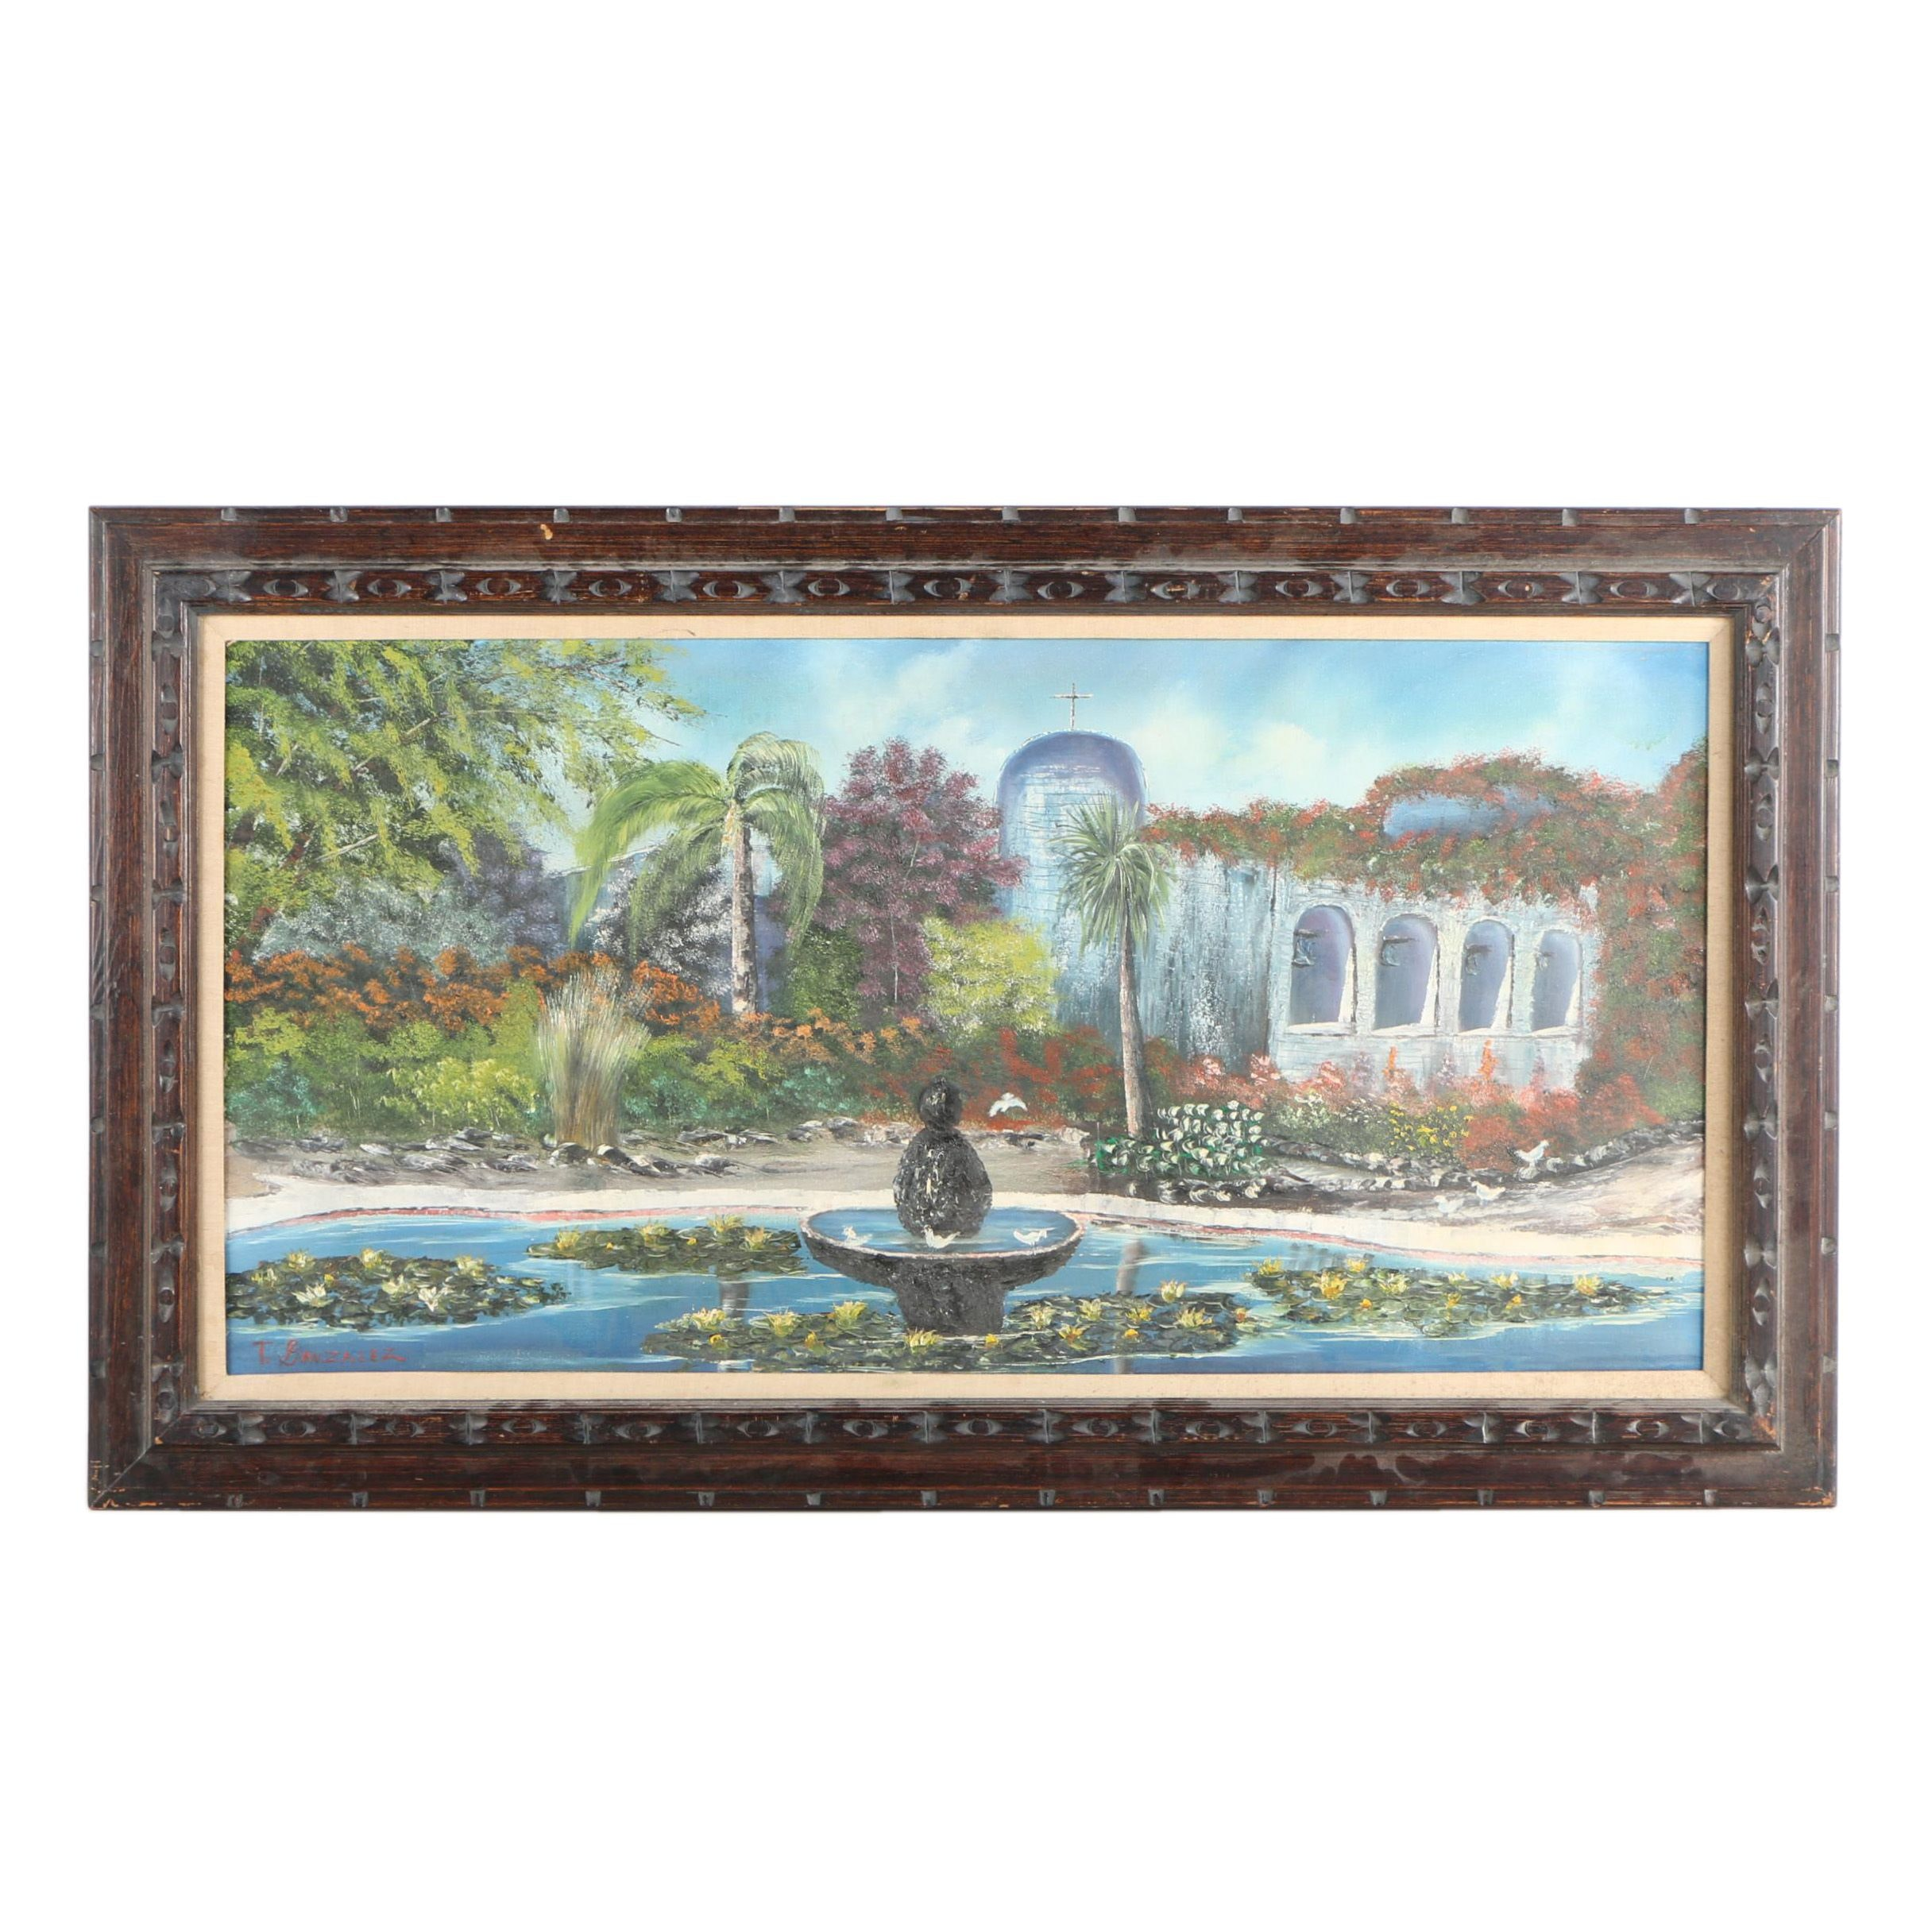 T. Gonzalez Oil Painting on Canvas Church Courtyard